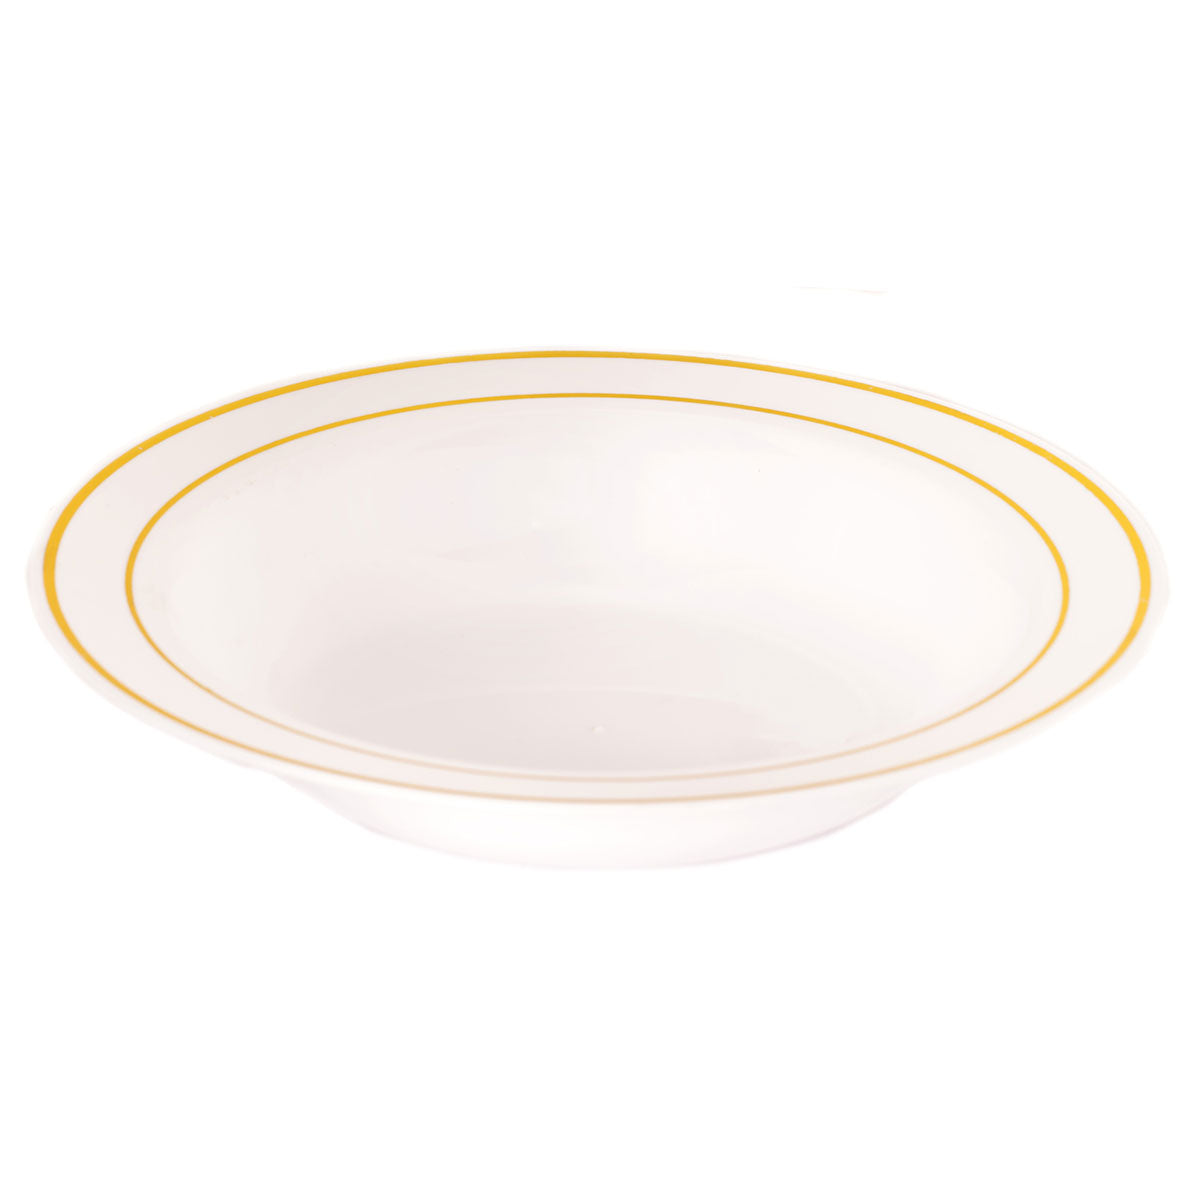 Edge 12 Oz. Plastic Soup Bowls, White with Gold Band